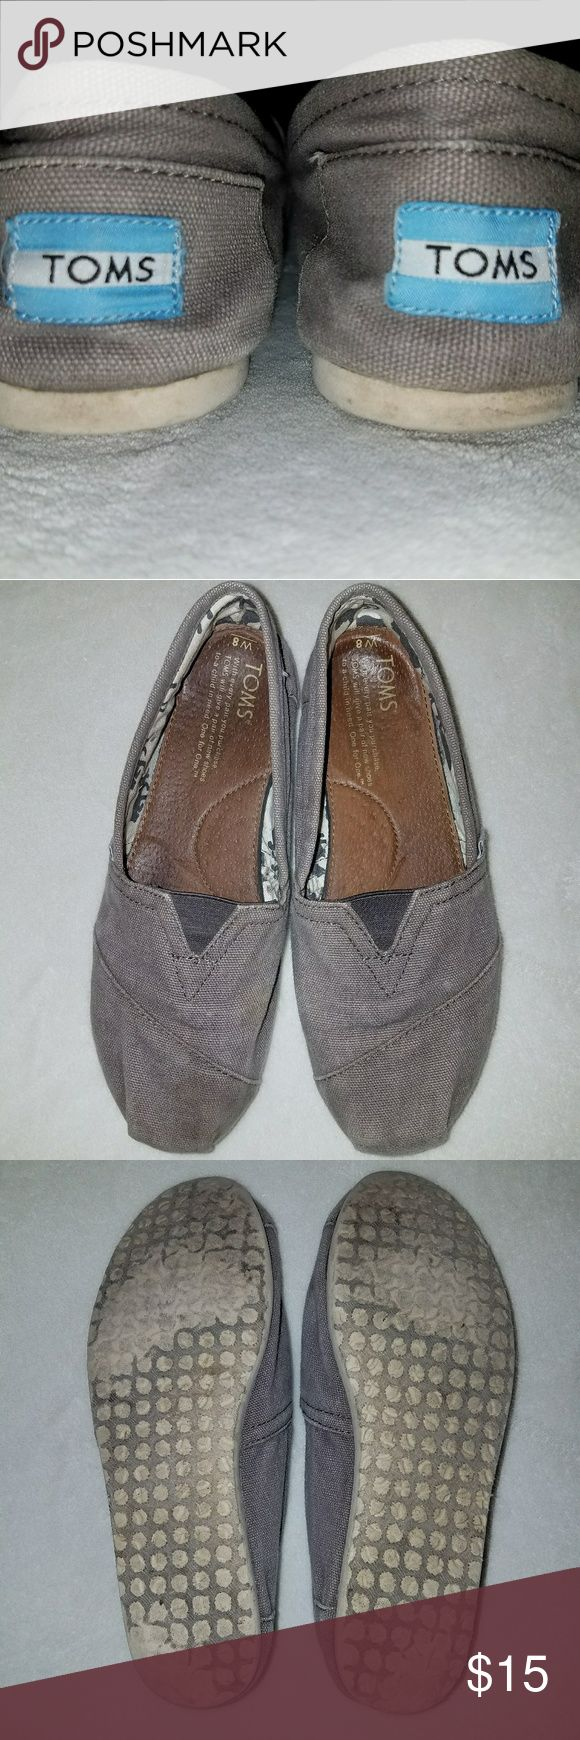 Gray Toms Dearly loved gray Toms that need a new home. No holes or rips. These are true to size and go with just about everything! TOMS Shoes